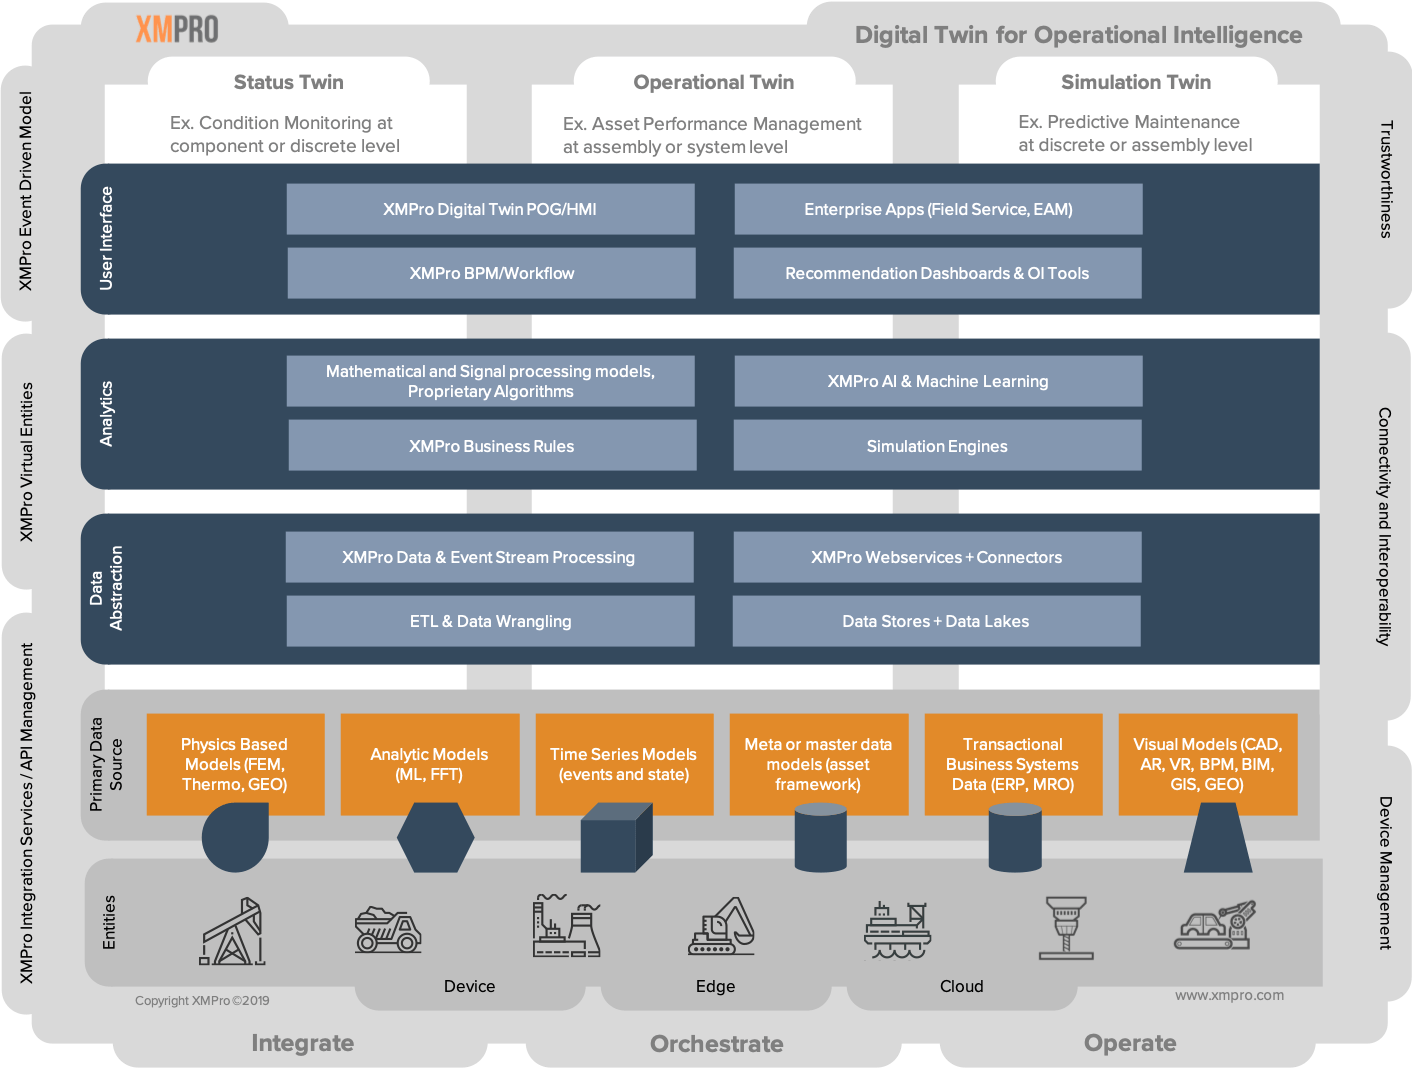 Digital Twin Reference Architecture